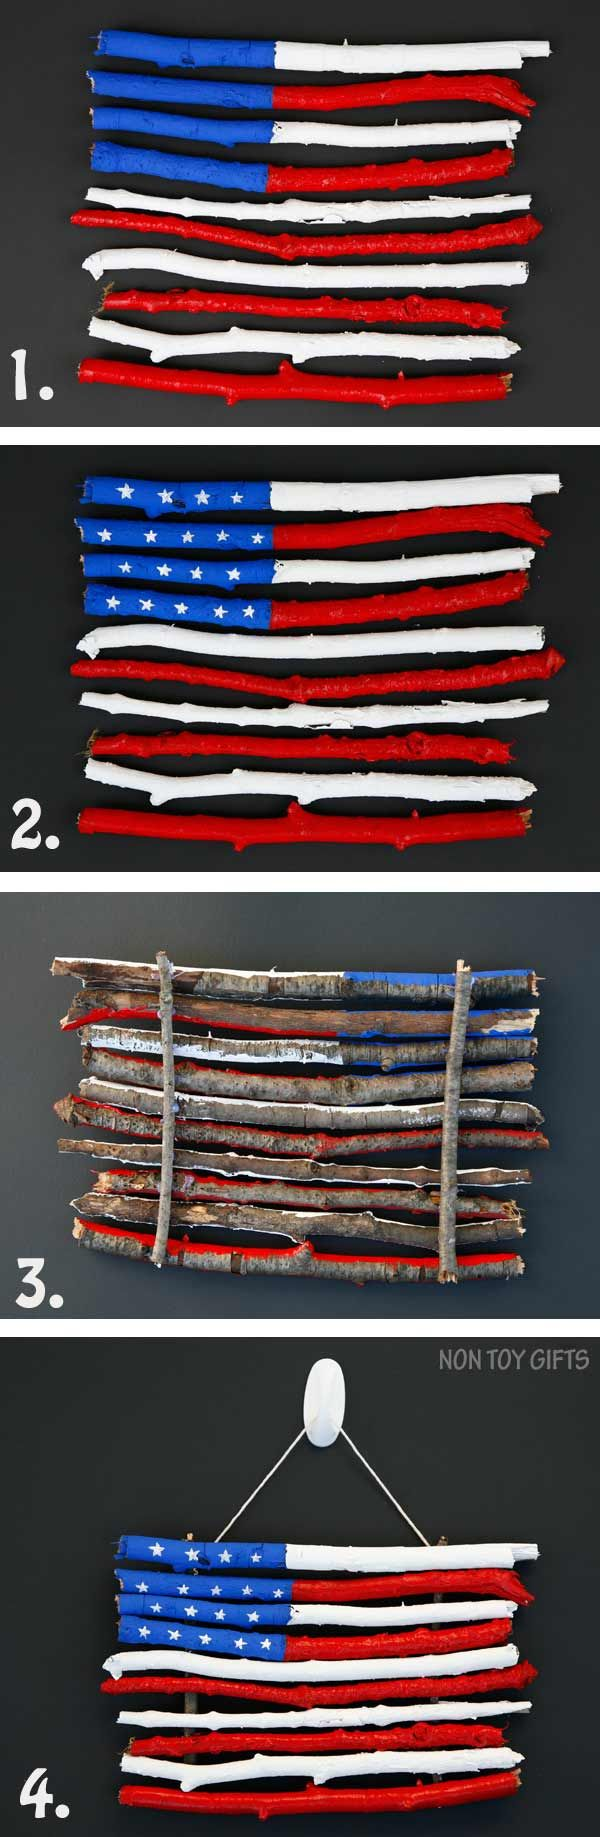 An easy American flag craft for kids. It uses sticks and twigs. Perfect for 4th of July, Memorial Day or Flag Day. | at Non Toy Gifts